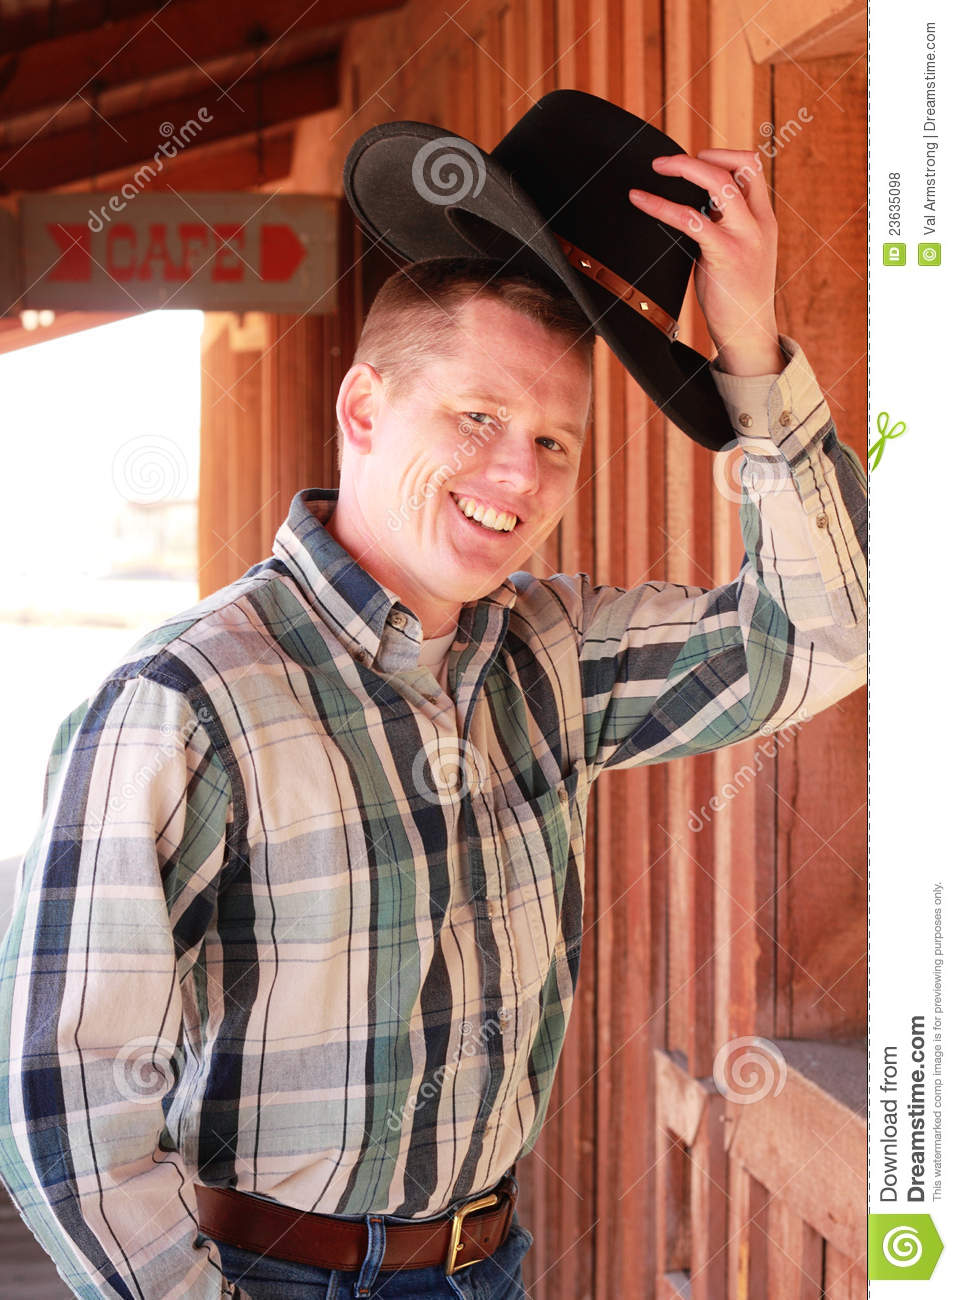 Cowboy Greeting Raise Of The Cowboy Hat Royalty Free Stock Photos Image 23635098